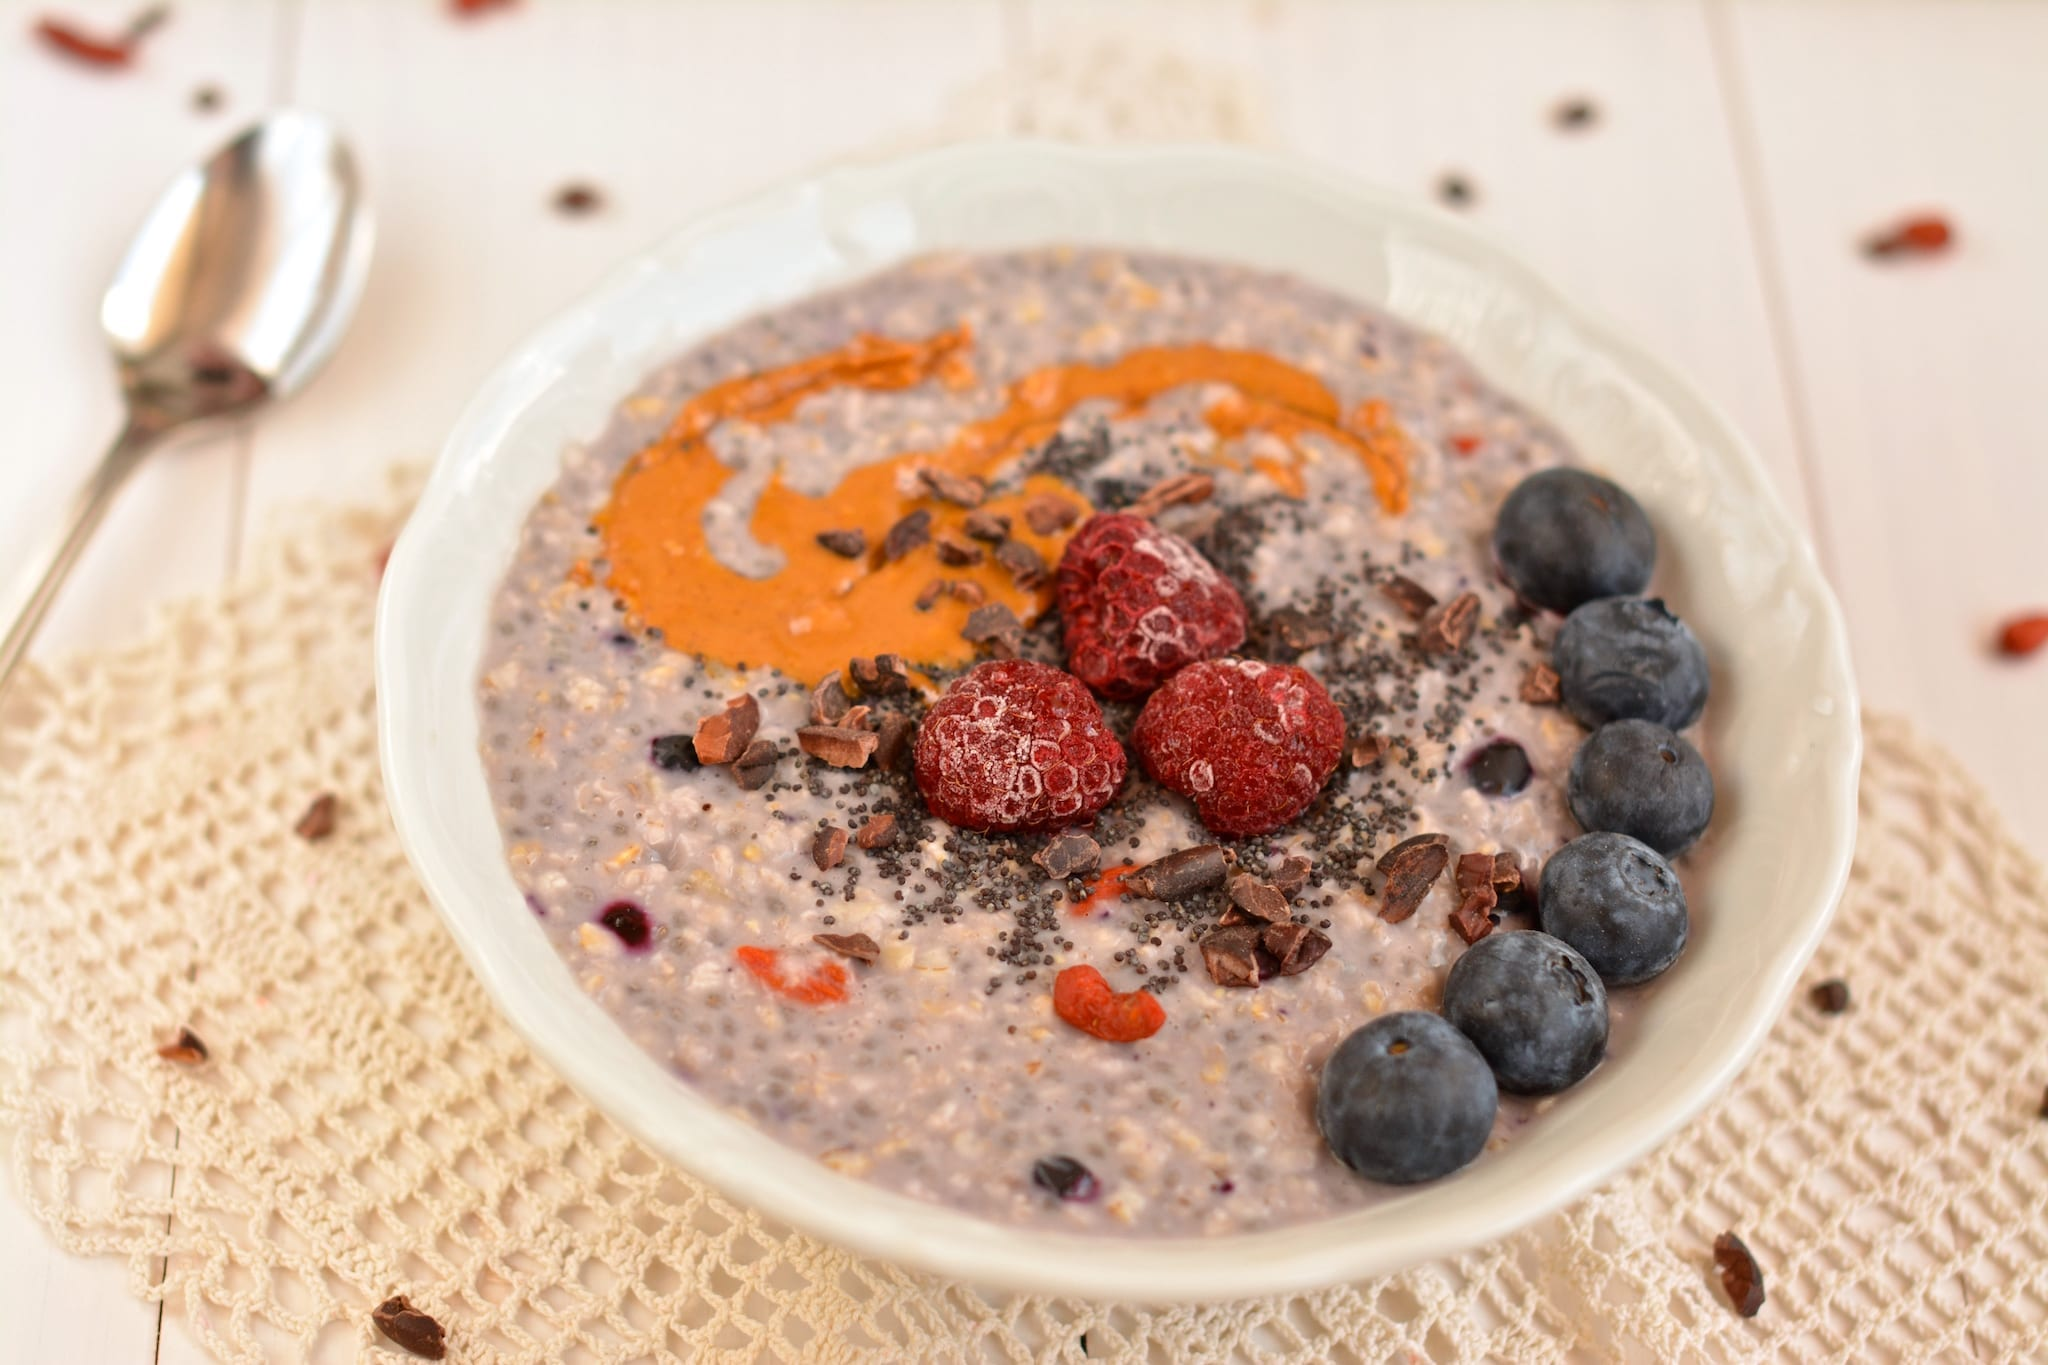 Oatmeal, Blueberry-Chia